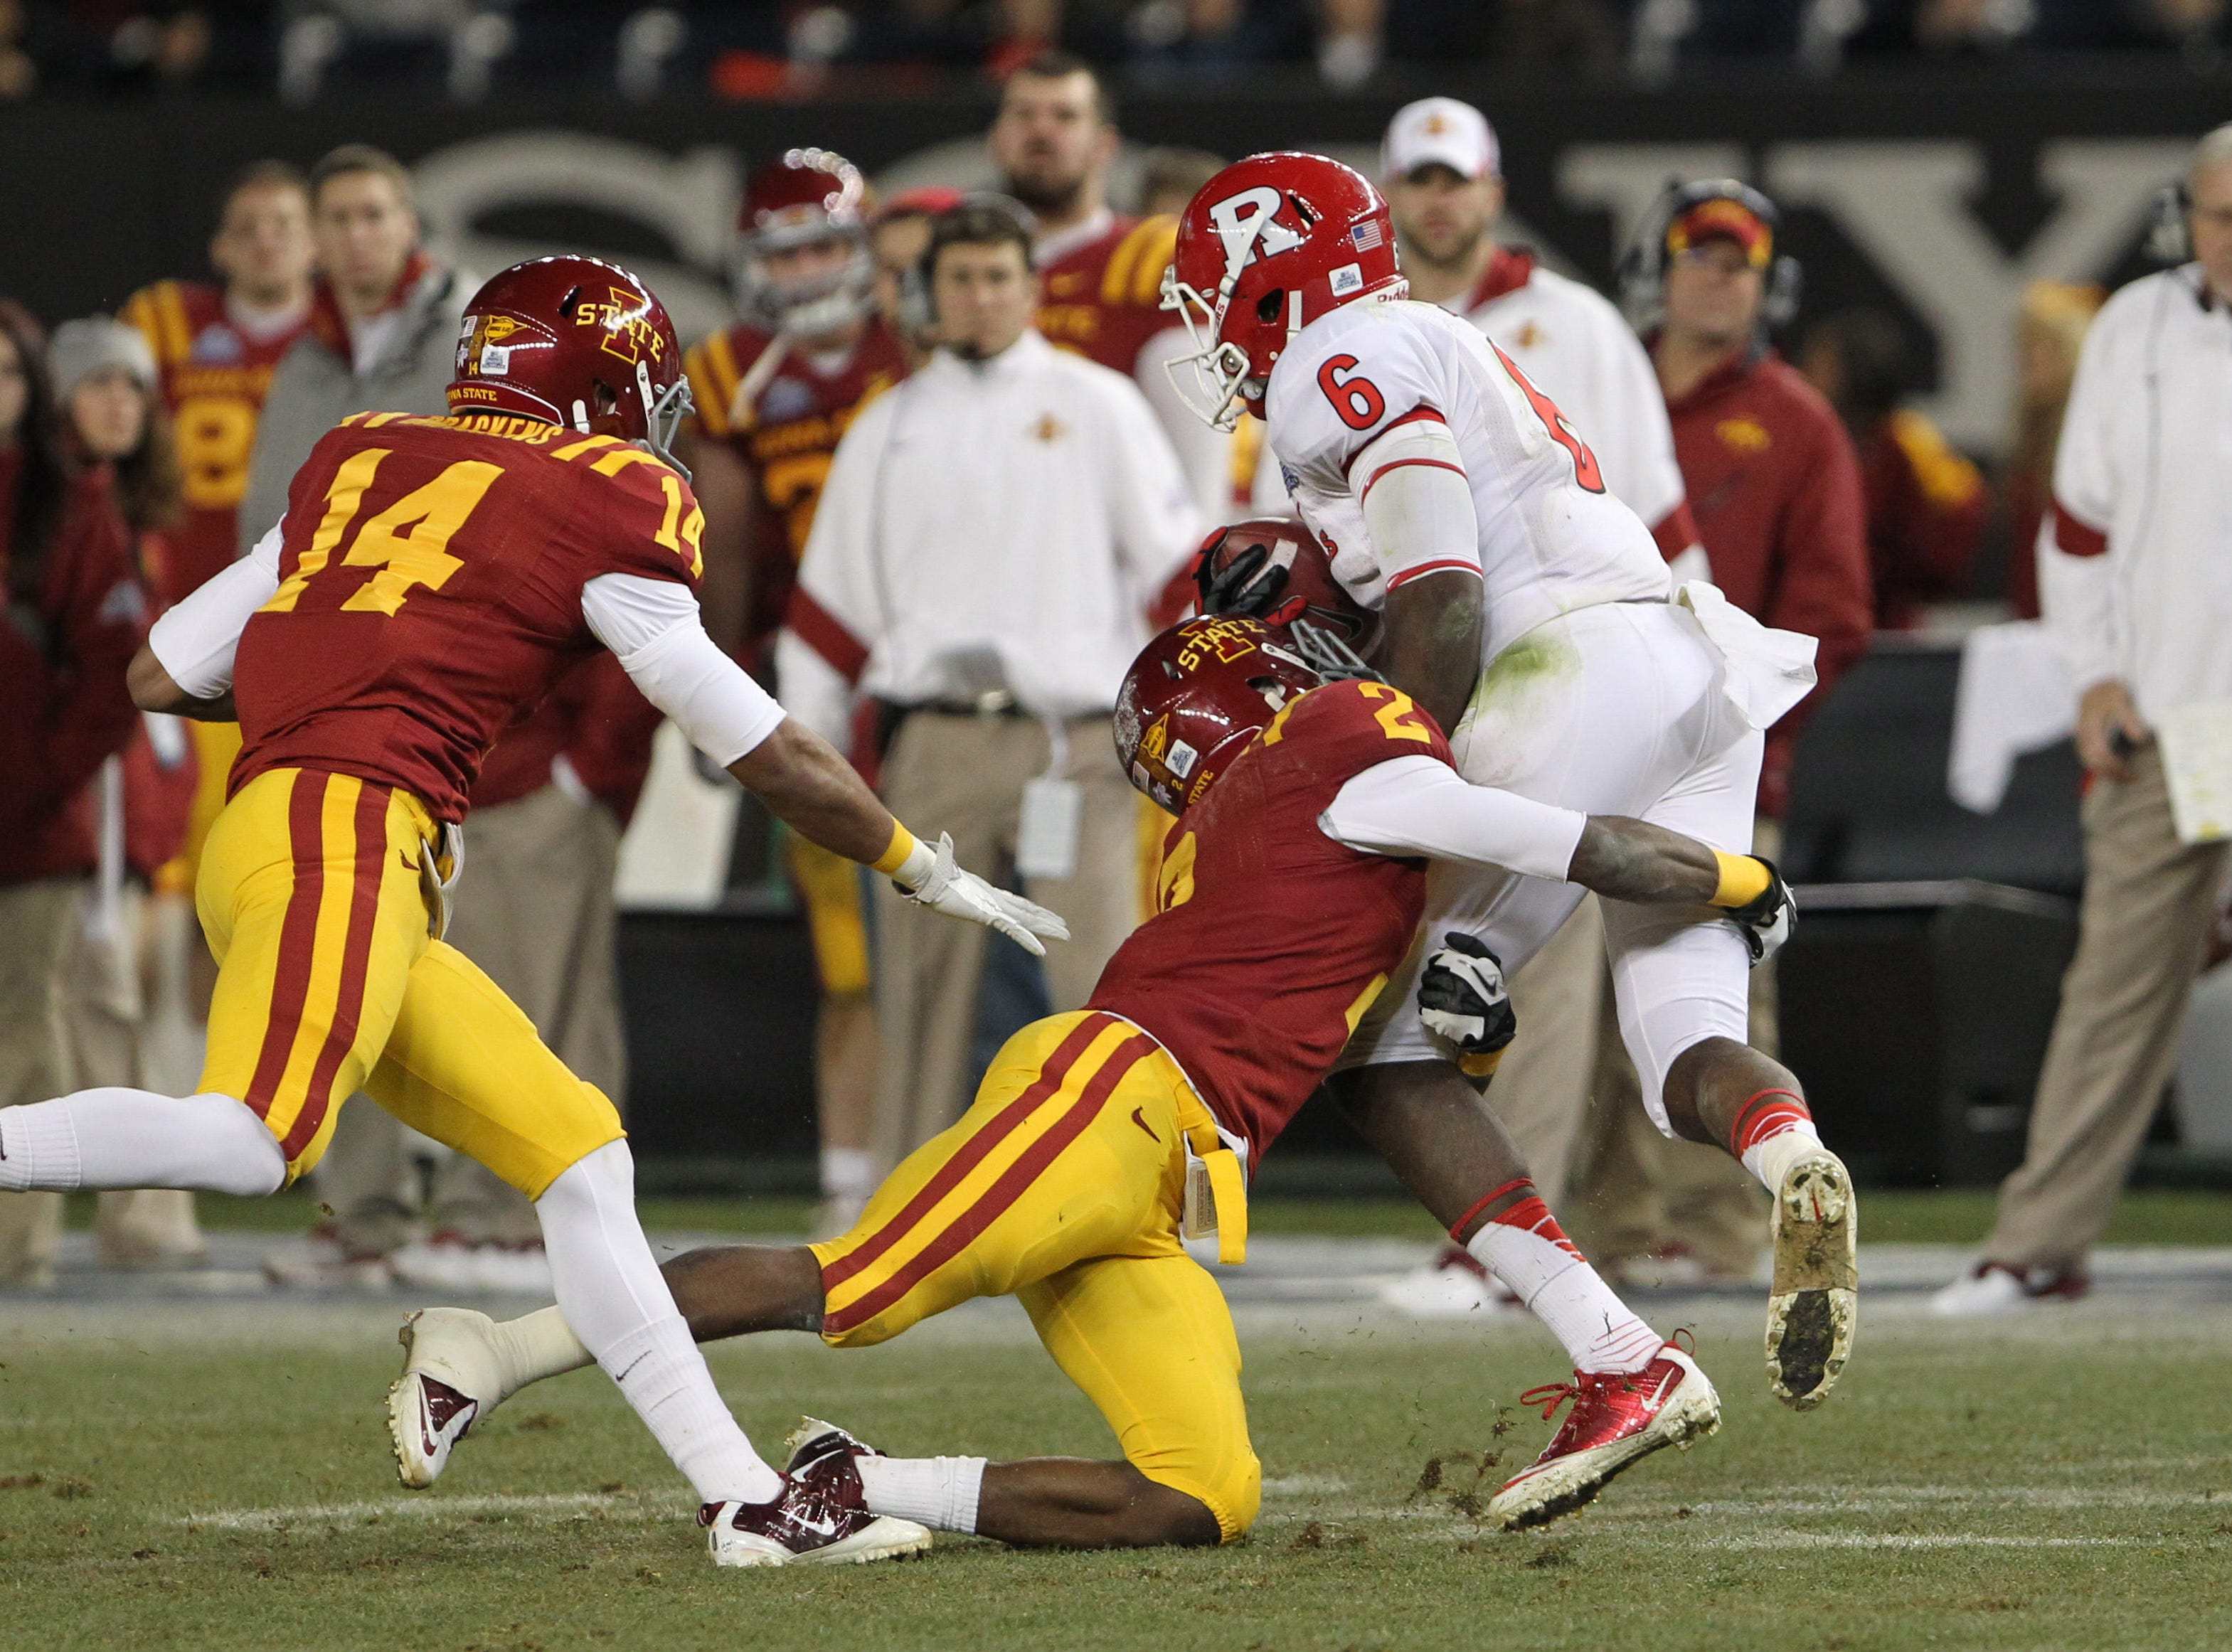 Iowa State Cyclones defensive back Jansen Watson (2) tackles Rutgers Scarlet Knights wide receiver Mohamed Sanu (6) during the third quarter of the 2011 Pinstripe Bowl at Yankee Stadium. Rutgers won 27 - 13.